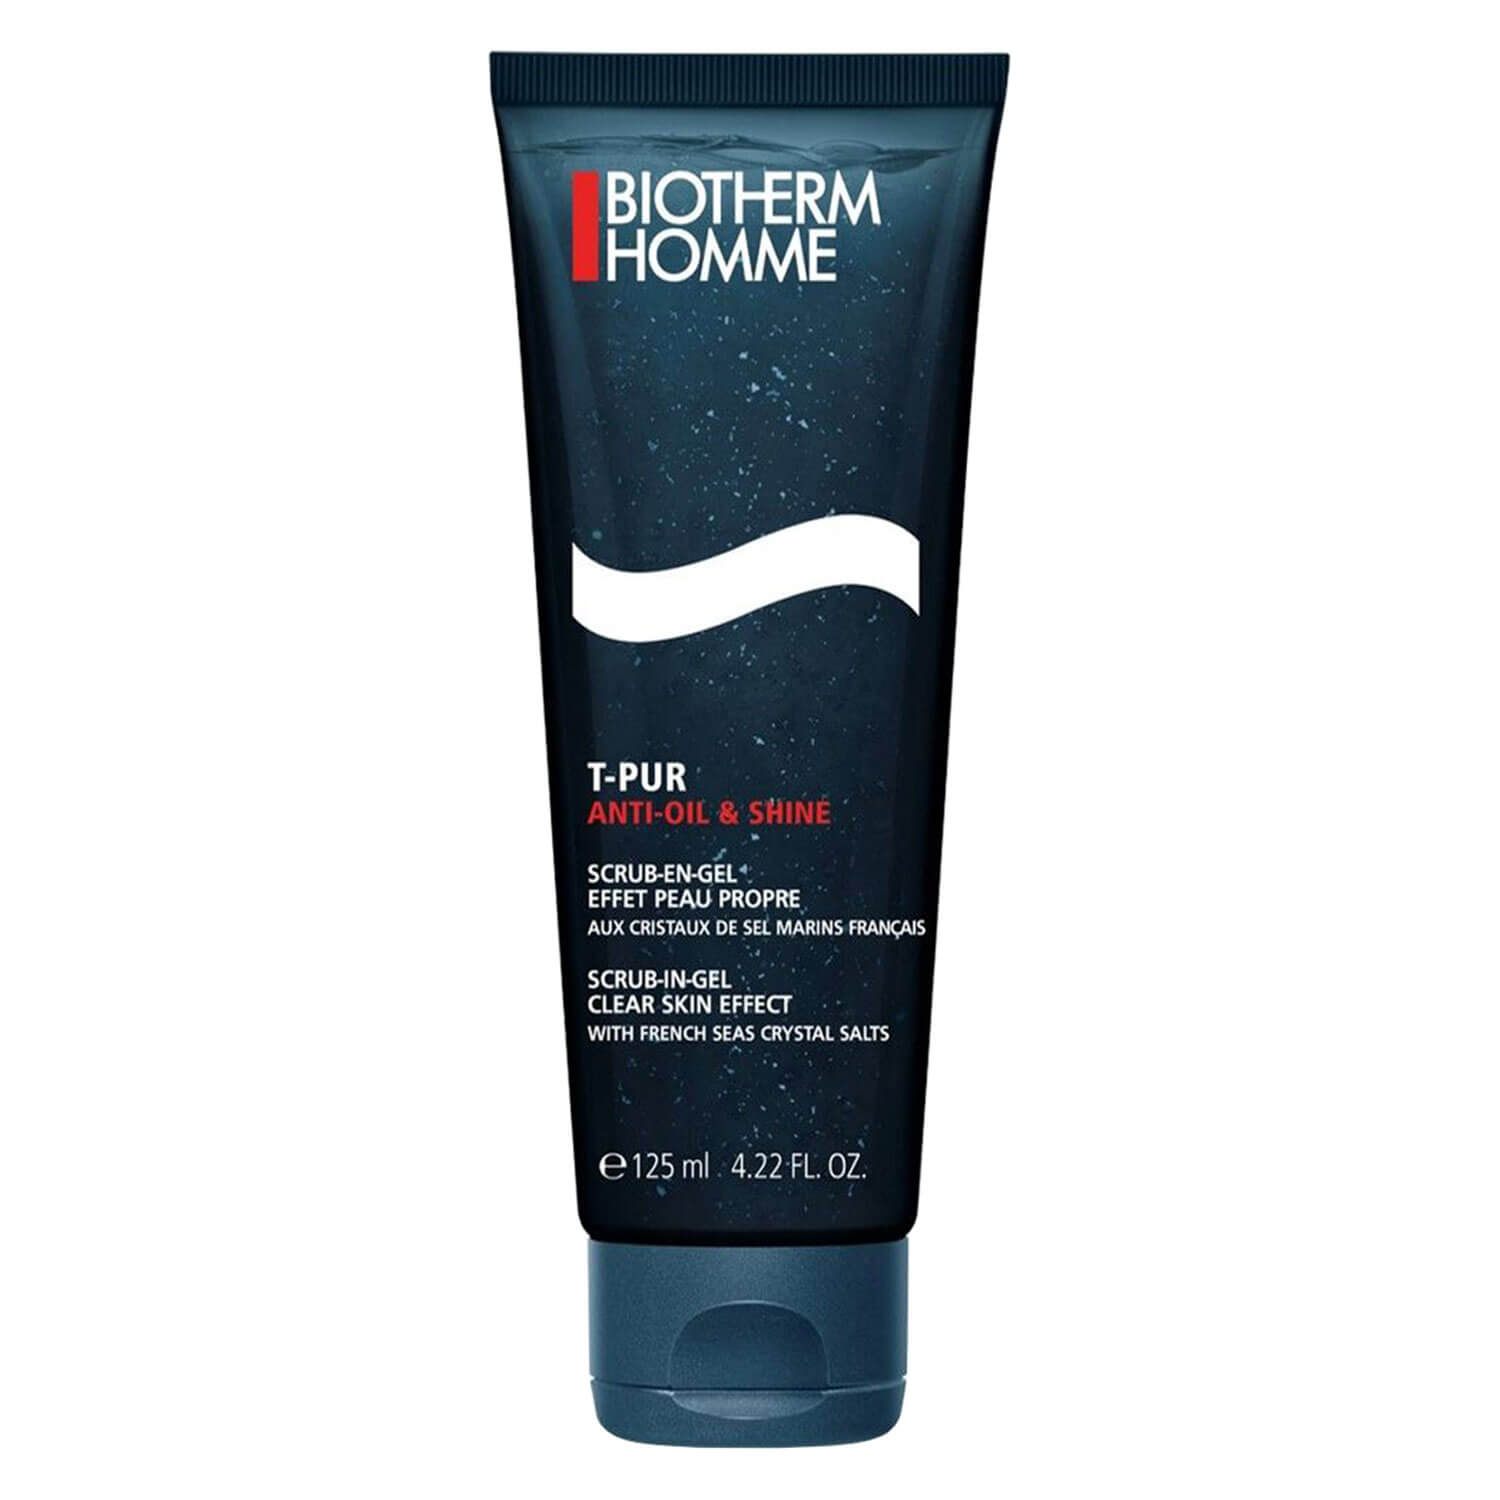 Biotherm Homme - T-Pur Anti-Oil & Shine Scrub-In-Gel